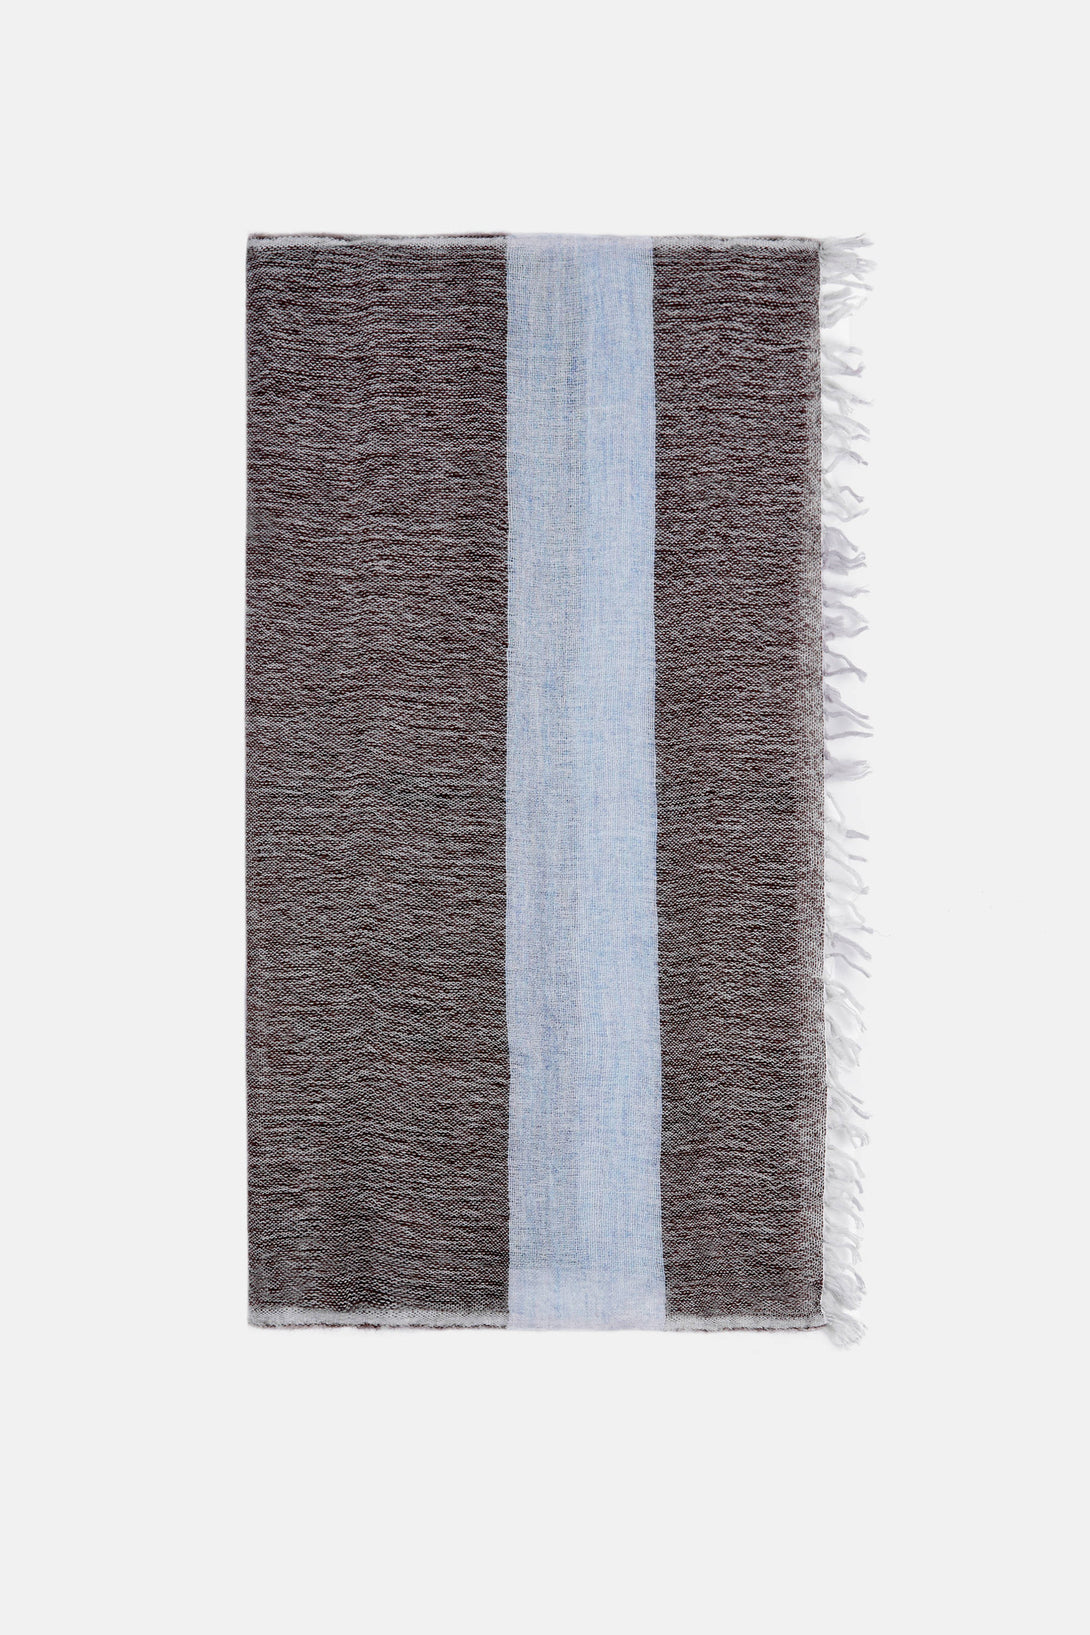 Tebiki Mohair Square Scarf - Earth